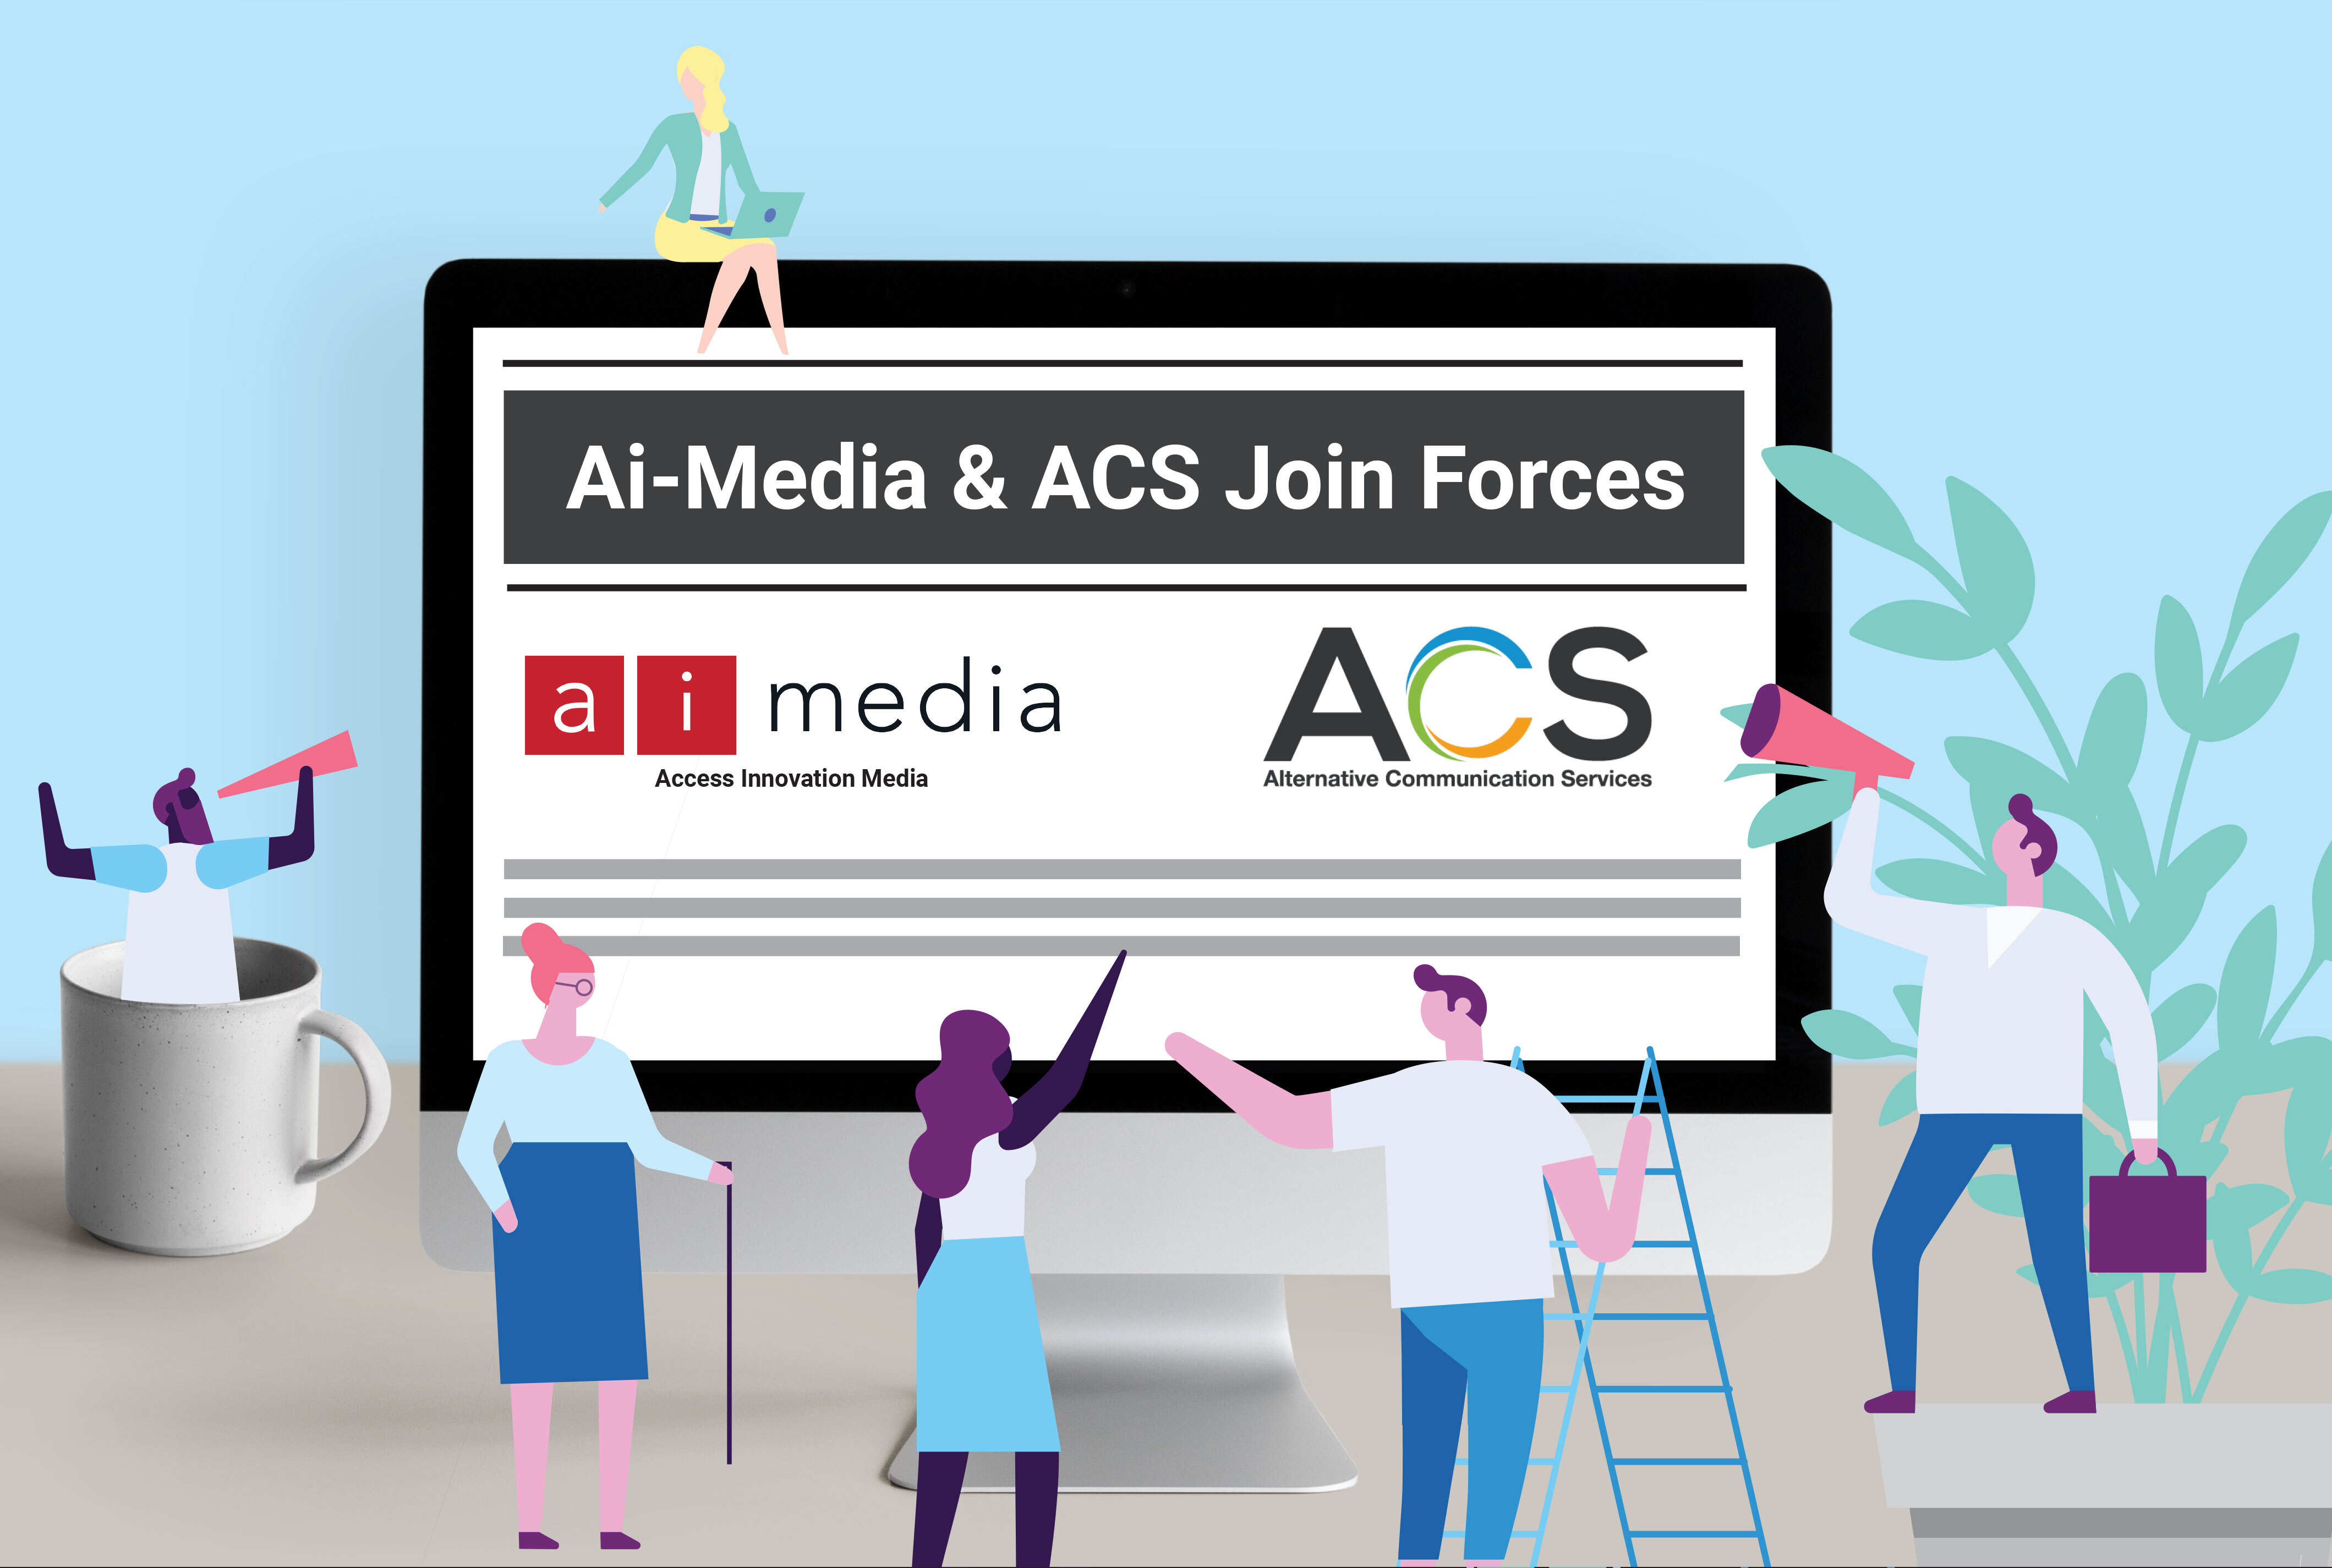 Illustrated image of a computer with a news article open on it. The headlines reads Ái-Media and ACS Join Forces'and it pictures their logos. There are small illustrated people around the computer, some speaking into megaphones and some working and celebrating. There is a plant and a mug on the computer desk.